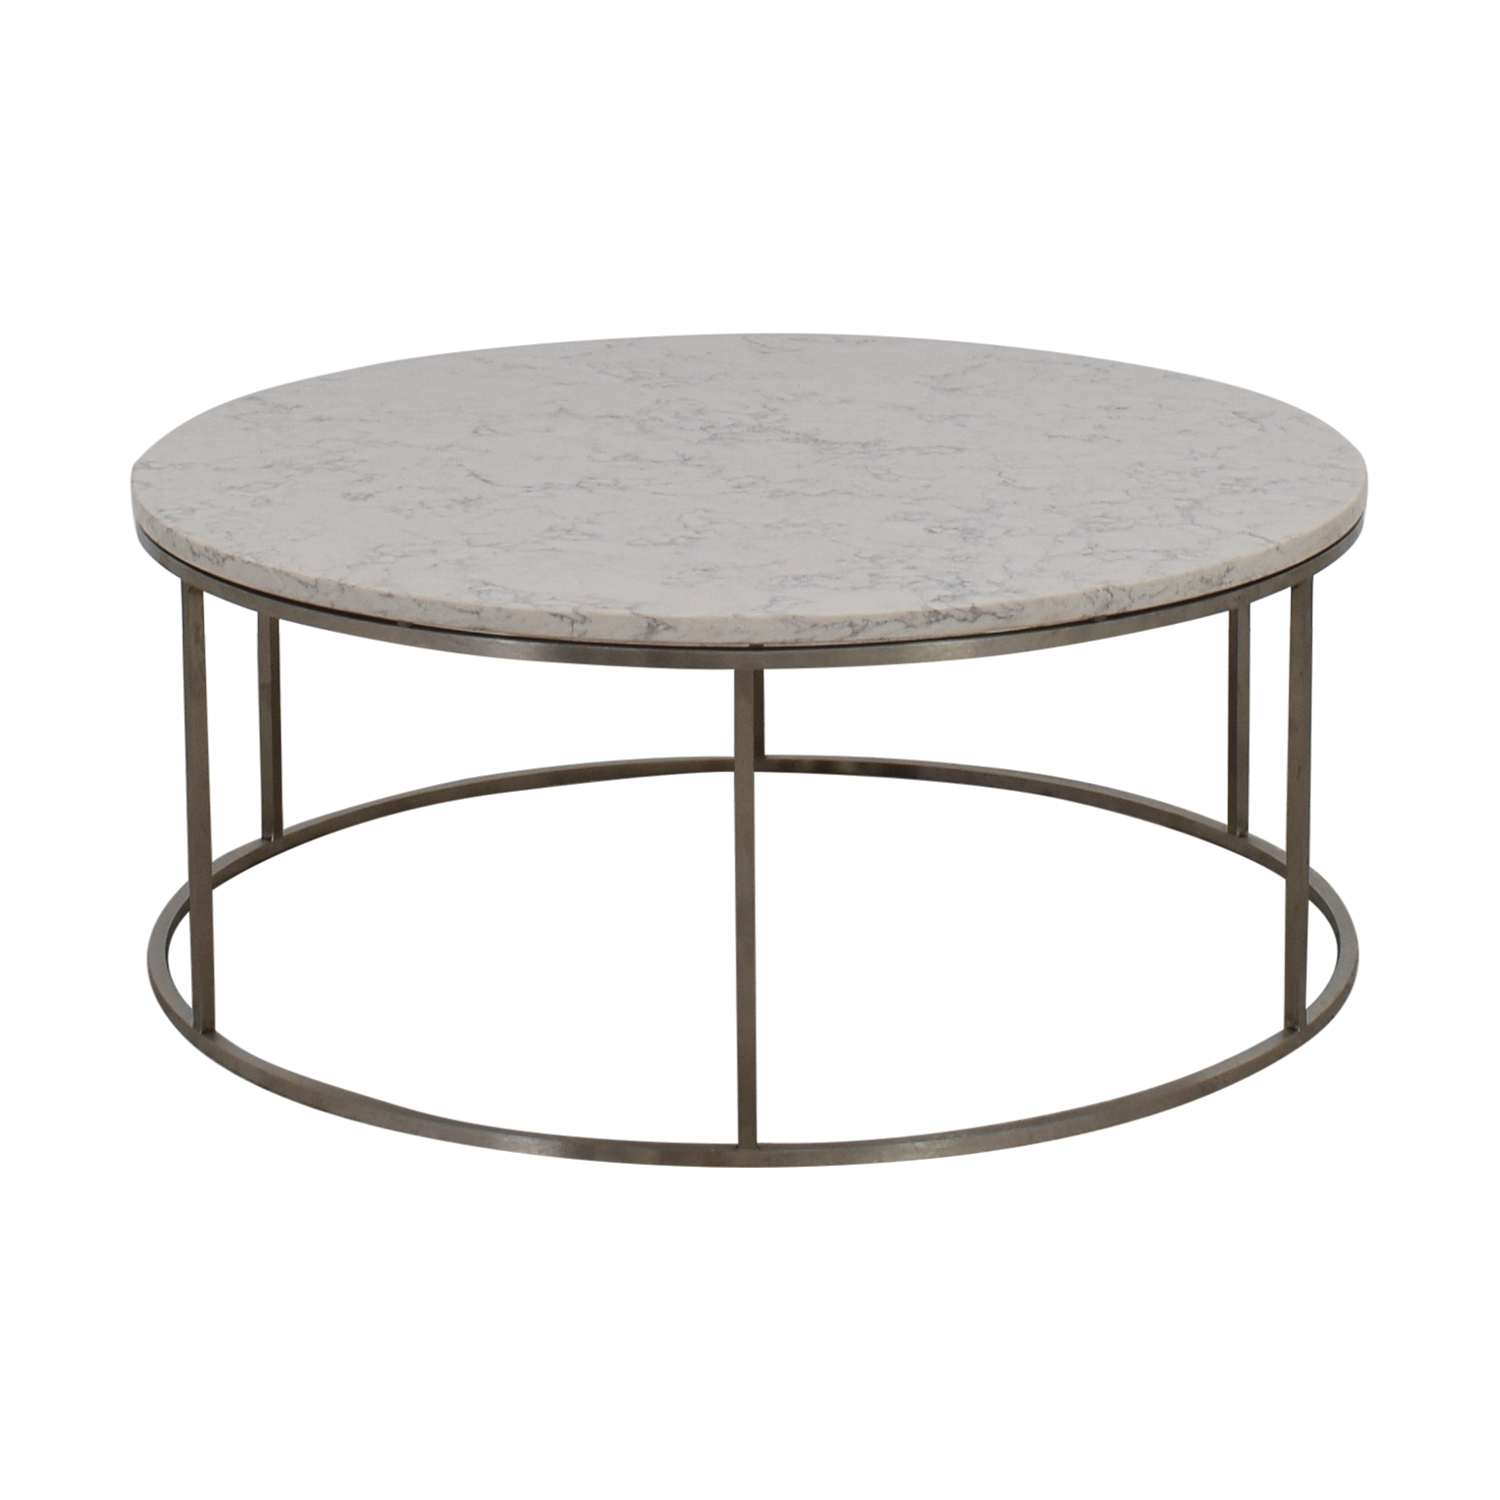 Room & Board Room & Board Round Marble Top Coffee Table on sale